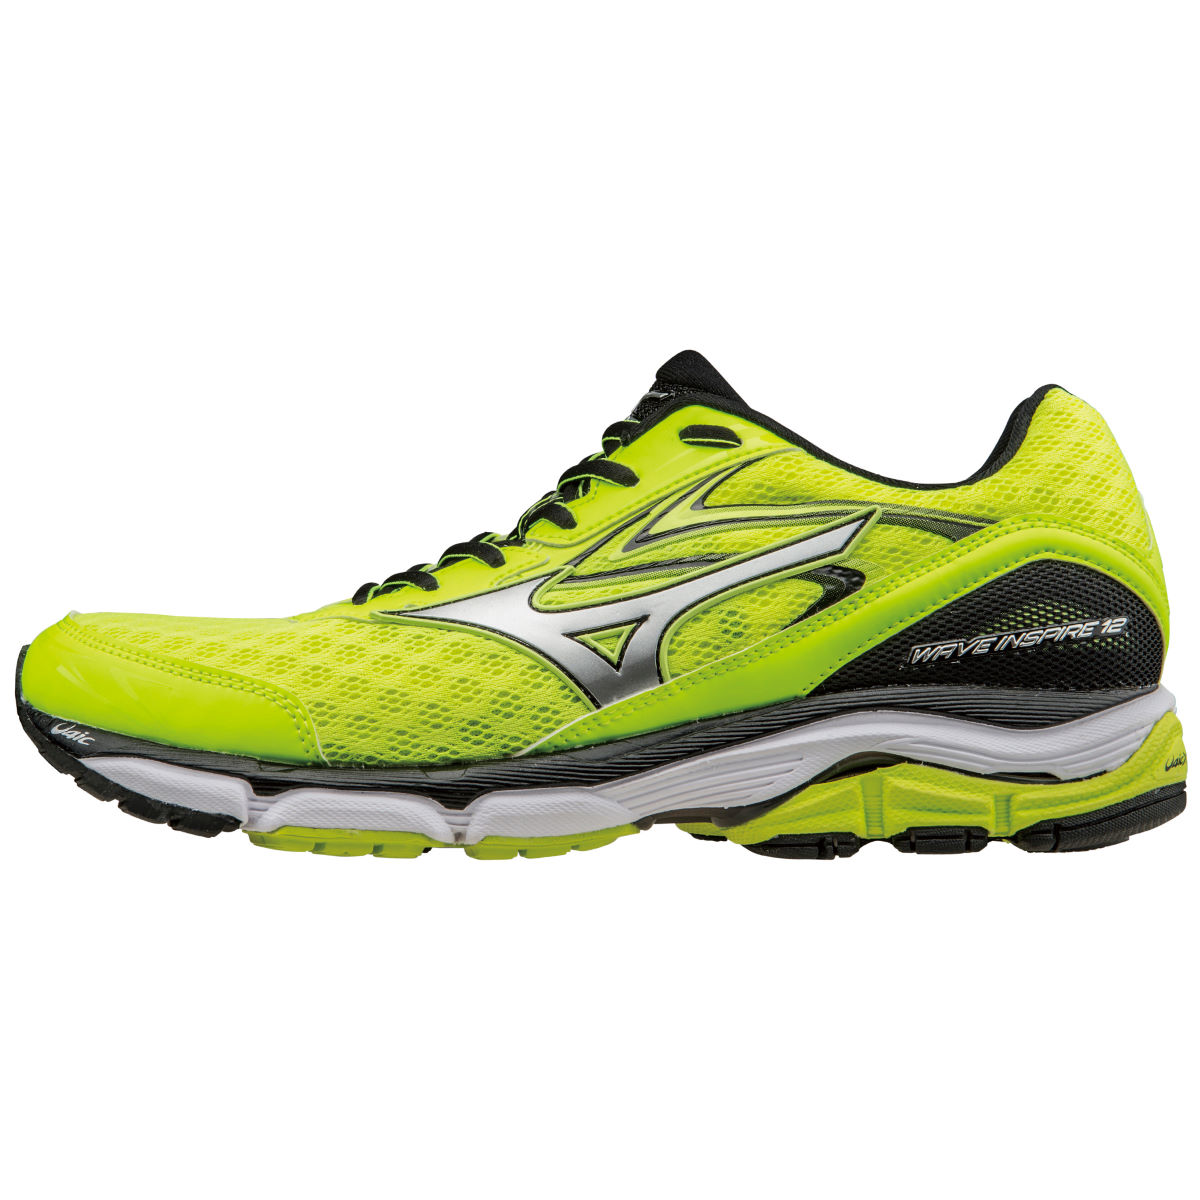 Chaussures Mizuno Wave Inspire 12 (PE16) - 7 UK Yellow/Silver/Black Chaussures de running stables